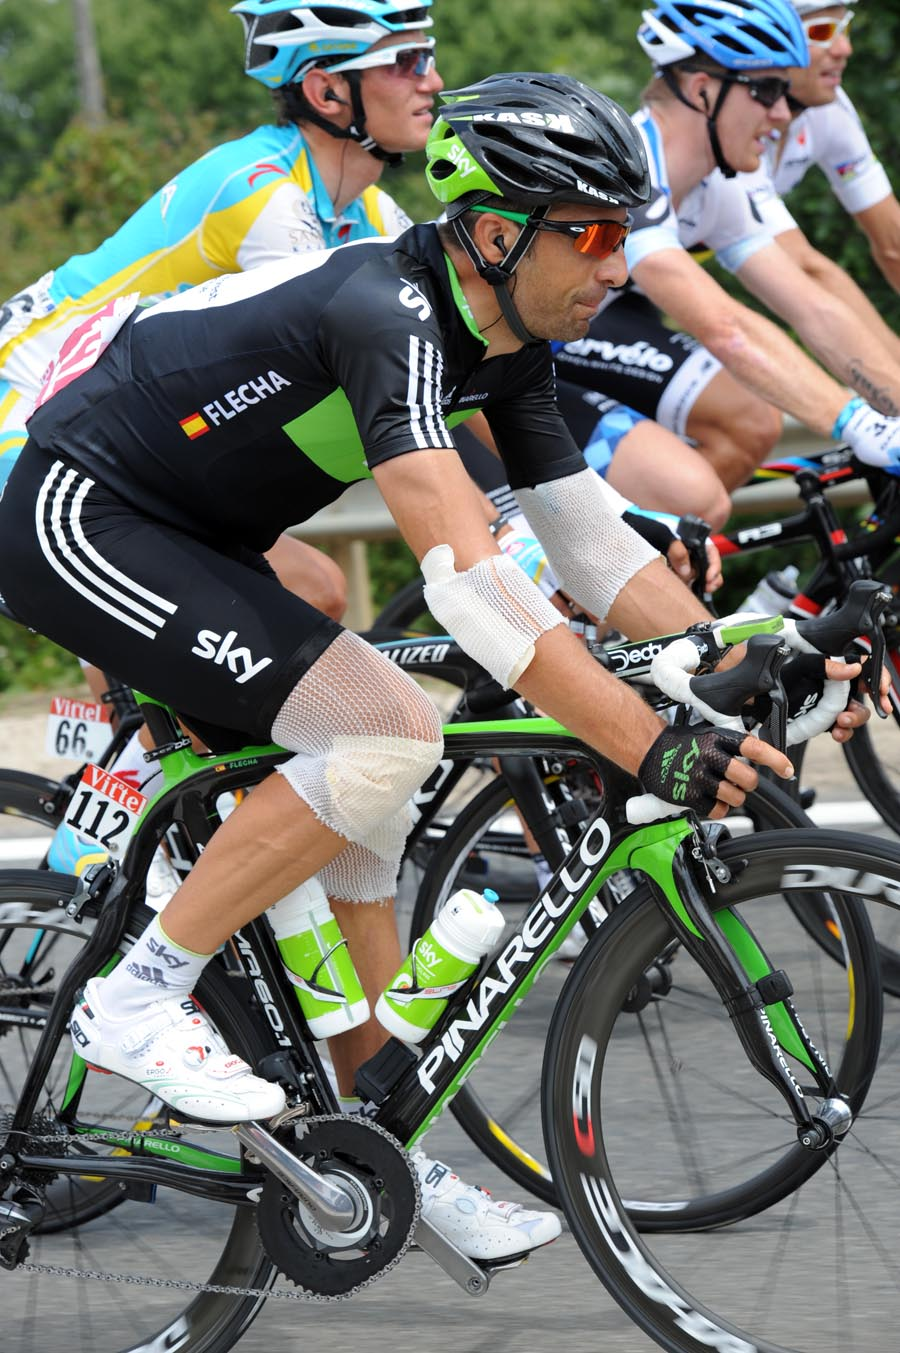 Juan Antonio Flecha in bandages after being hit by a car on stage nine, Tour de France 2011, stage 10